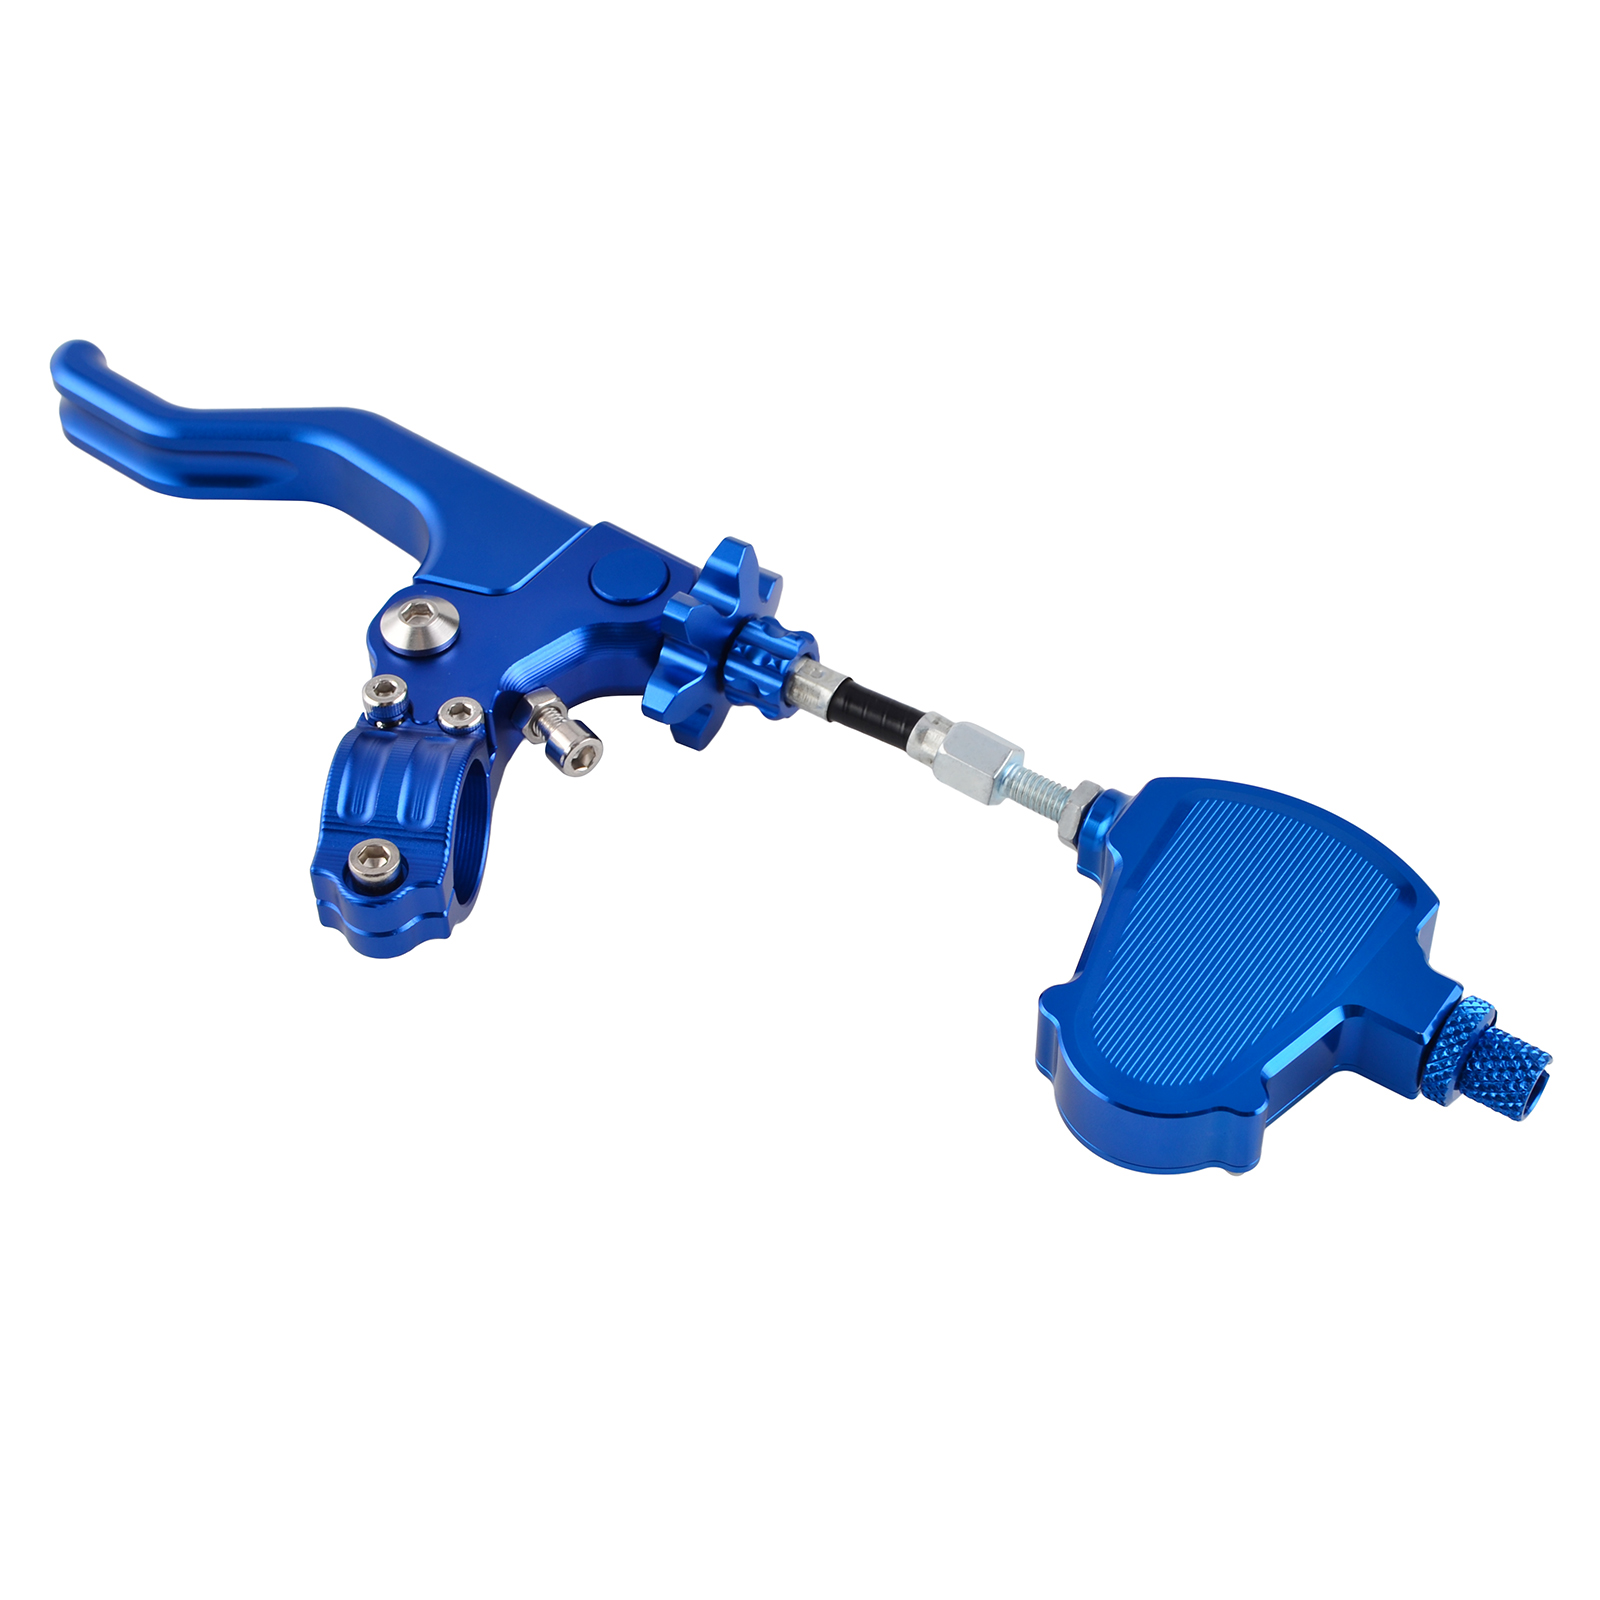 NICECNC 22mm Stunt Clutch Pull Cable Lever For Yamaha YZ 80 85 125 250 125X 250X 250FX 450FX WR 250F 450F 250R TTR 600 XT XTZ 7 8 22mm brake hydraulic master cylinder kit reservoir levers for yamaha yz 80 85 wr 250f 450f 250r x ttr 600 125 serow 225 250